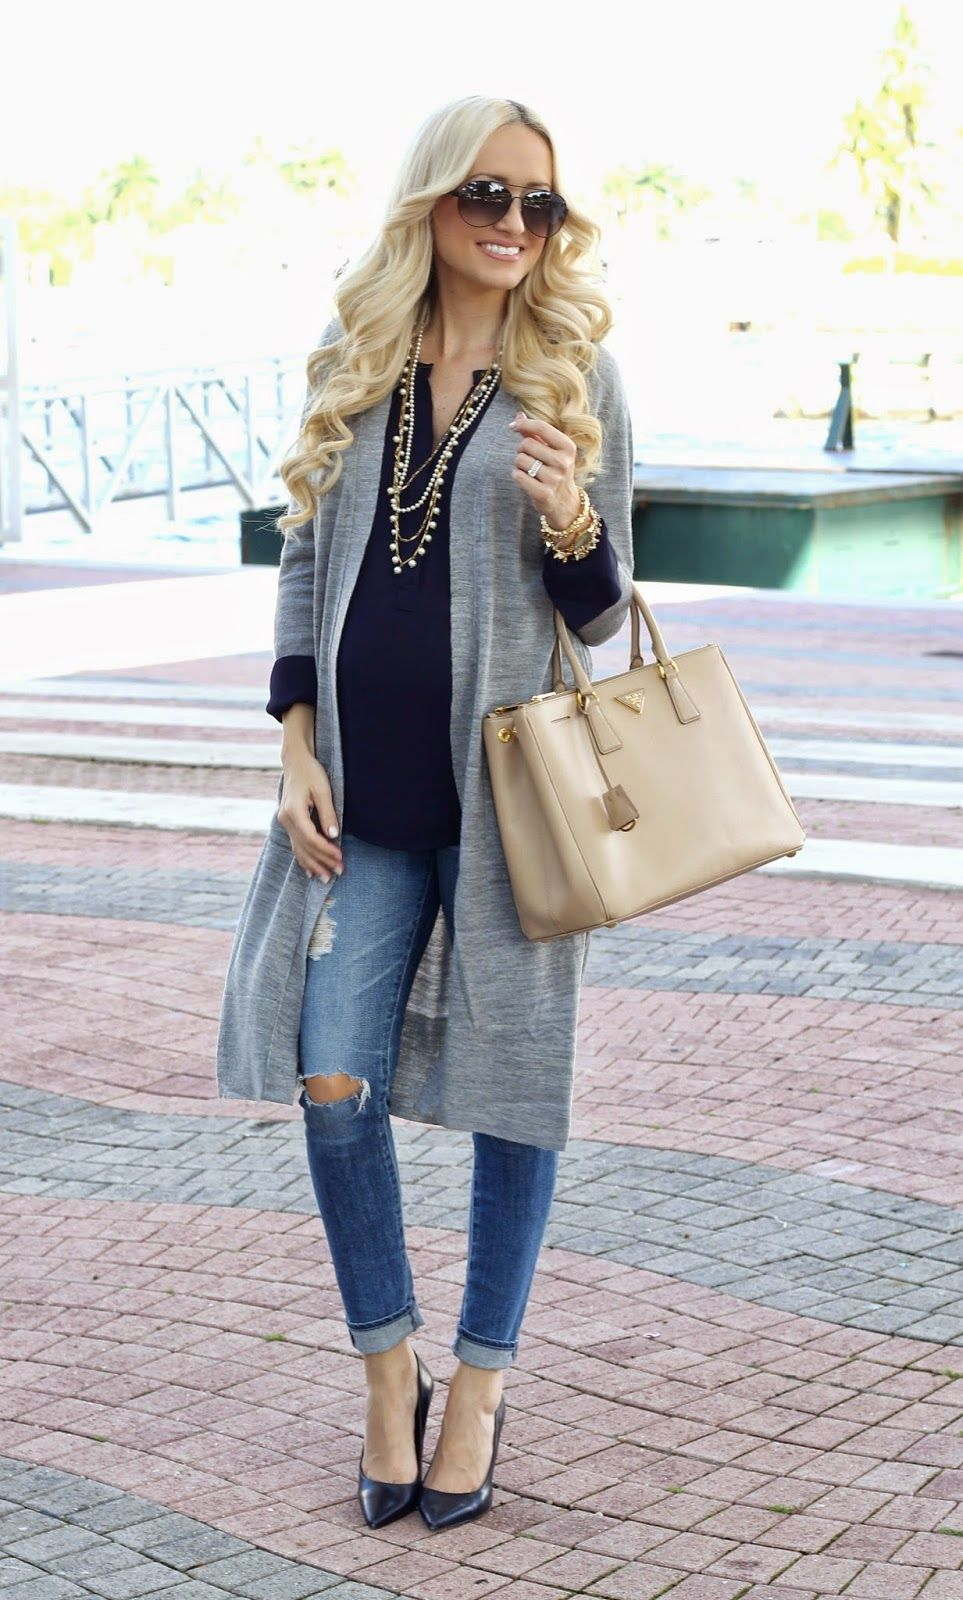 Get this maternity look for less than 70 shop rent consign 51 amazing maternity street style shots for fashion inspiration ombrellifo Choice Image